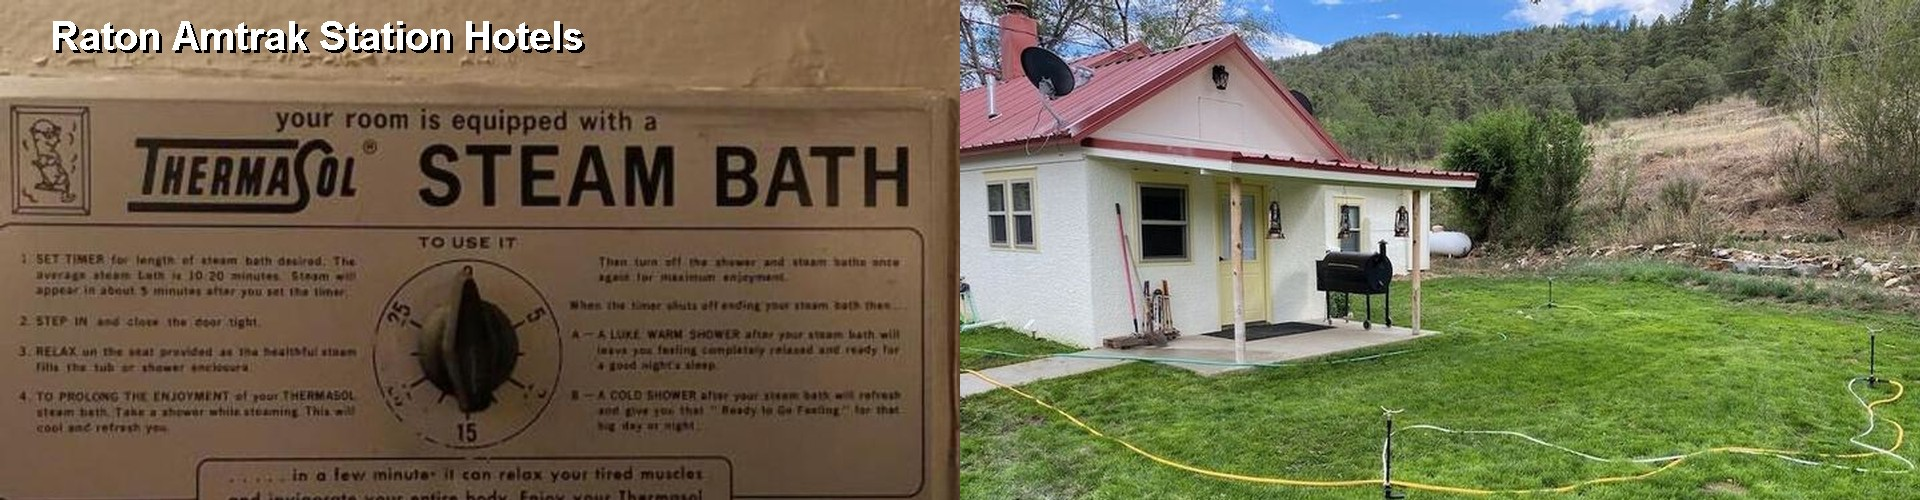 5 Best Hotels near Raton Amtrak Station